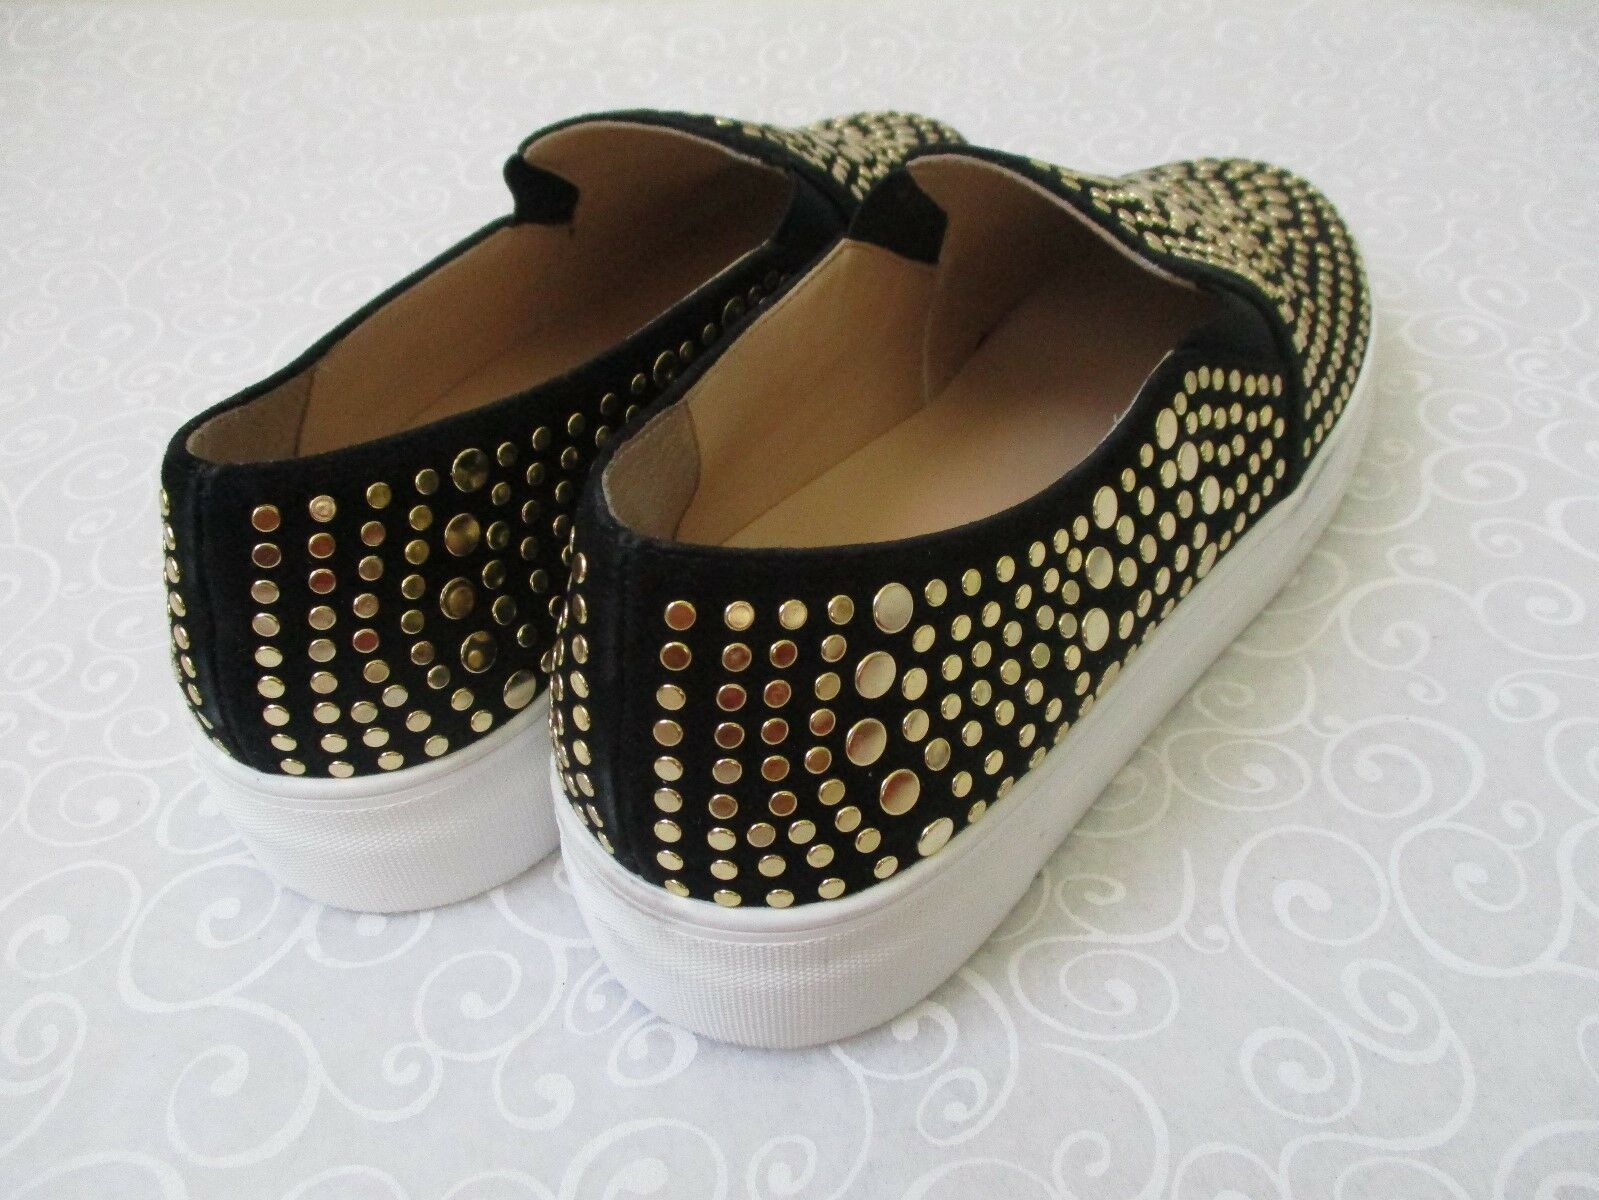 VINCE CAMUTO KINDRA FOXY BLACK/GOLD SILKY LEATHER LOAFERS LOAFERS LOAFERS SIZE 8 1/2 M - NEW a0adbb